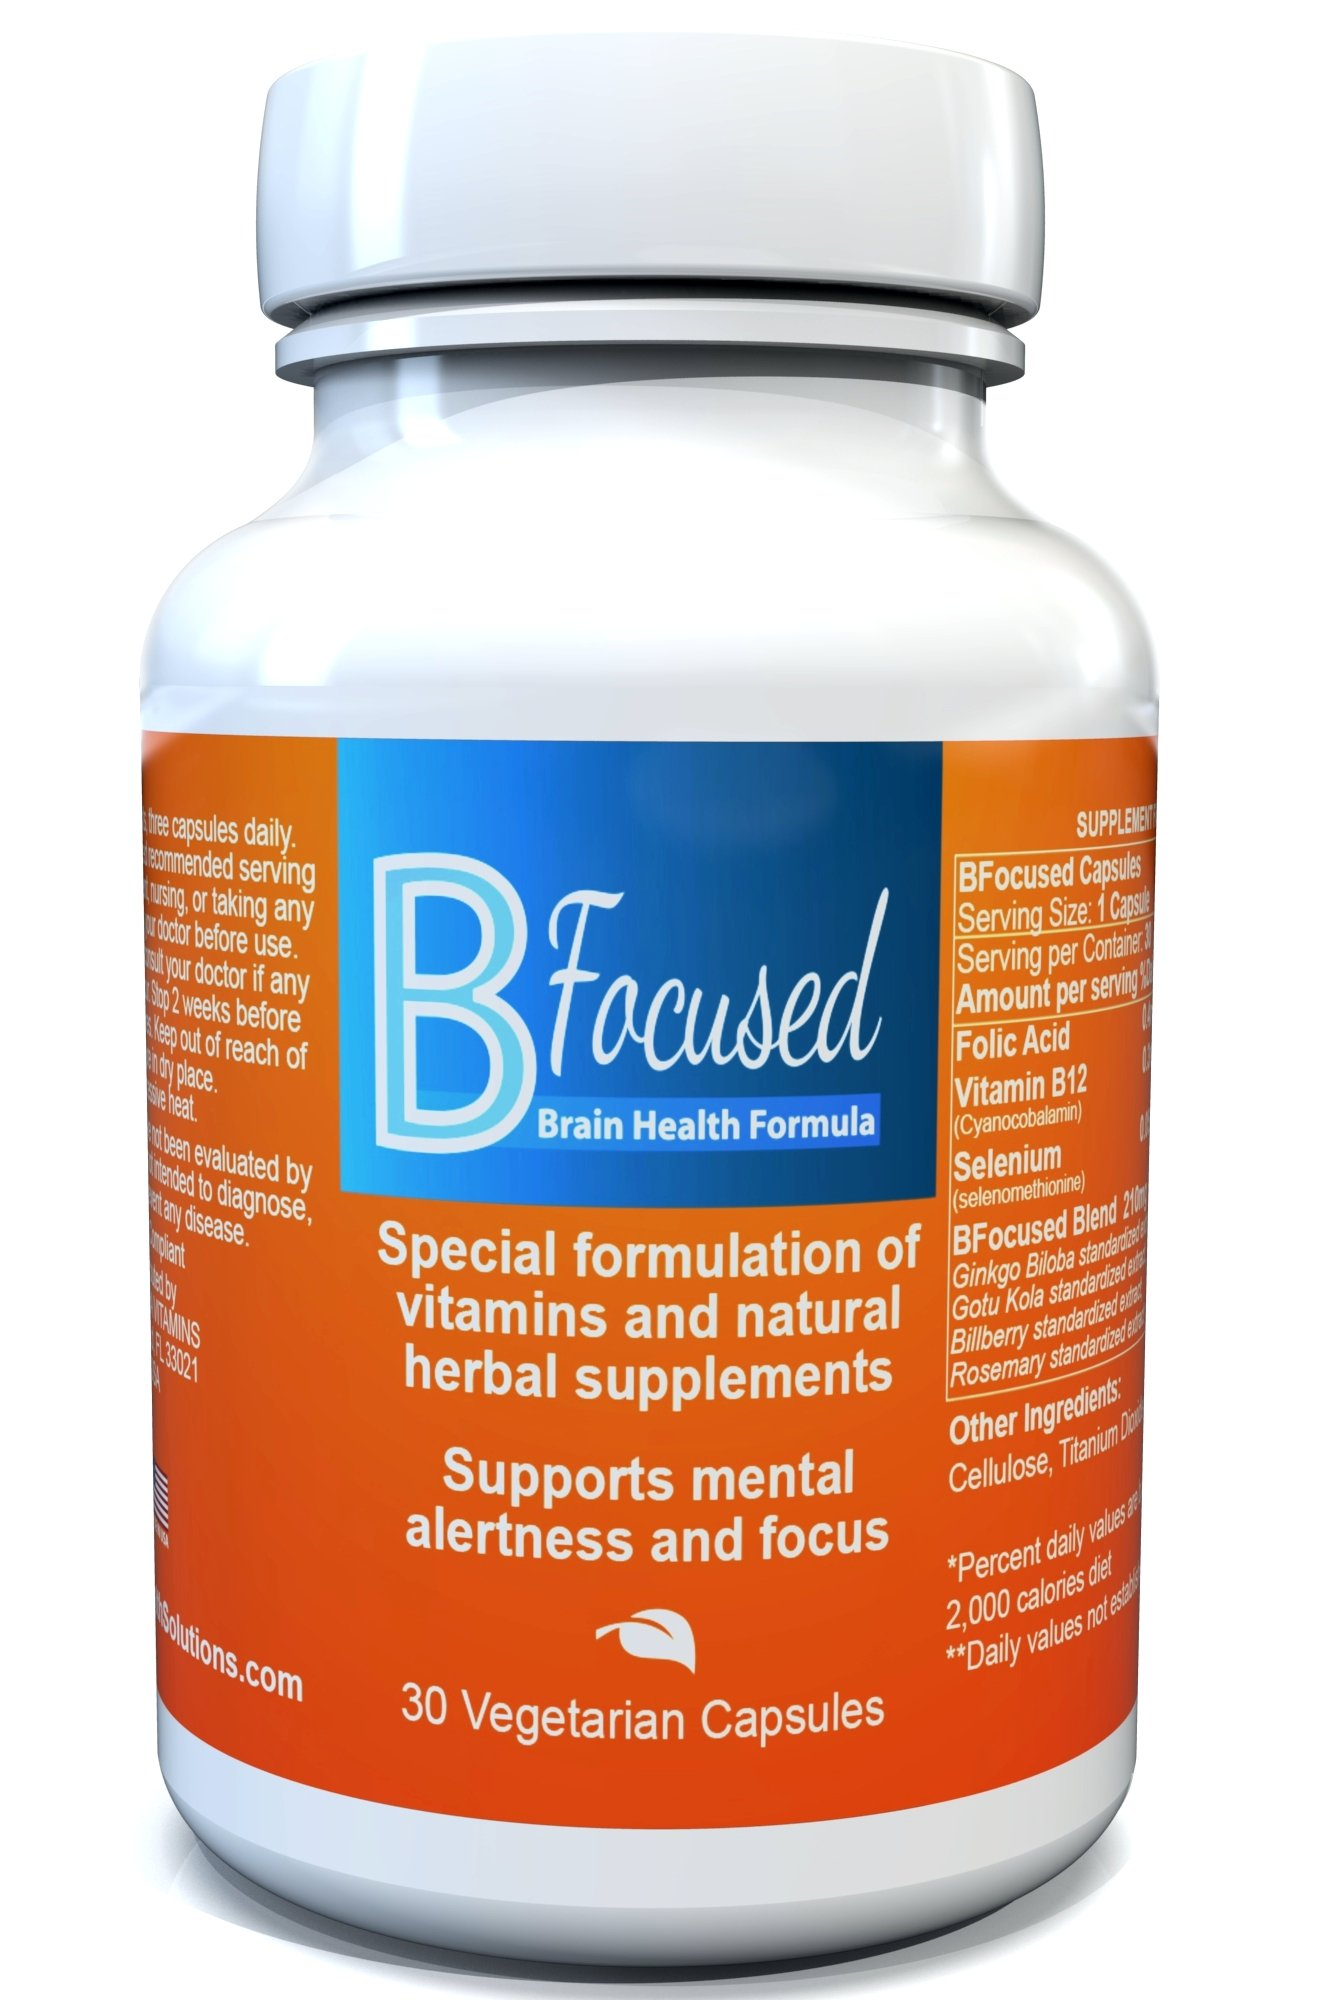 Bfocused Brain Booster - Powerful Focus supplements for Concentration Memory and Focus - Focus pills w/b12 Selenium Gingo Biloba Rosemary Gotu Kola & Billberry - Made in United States